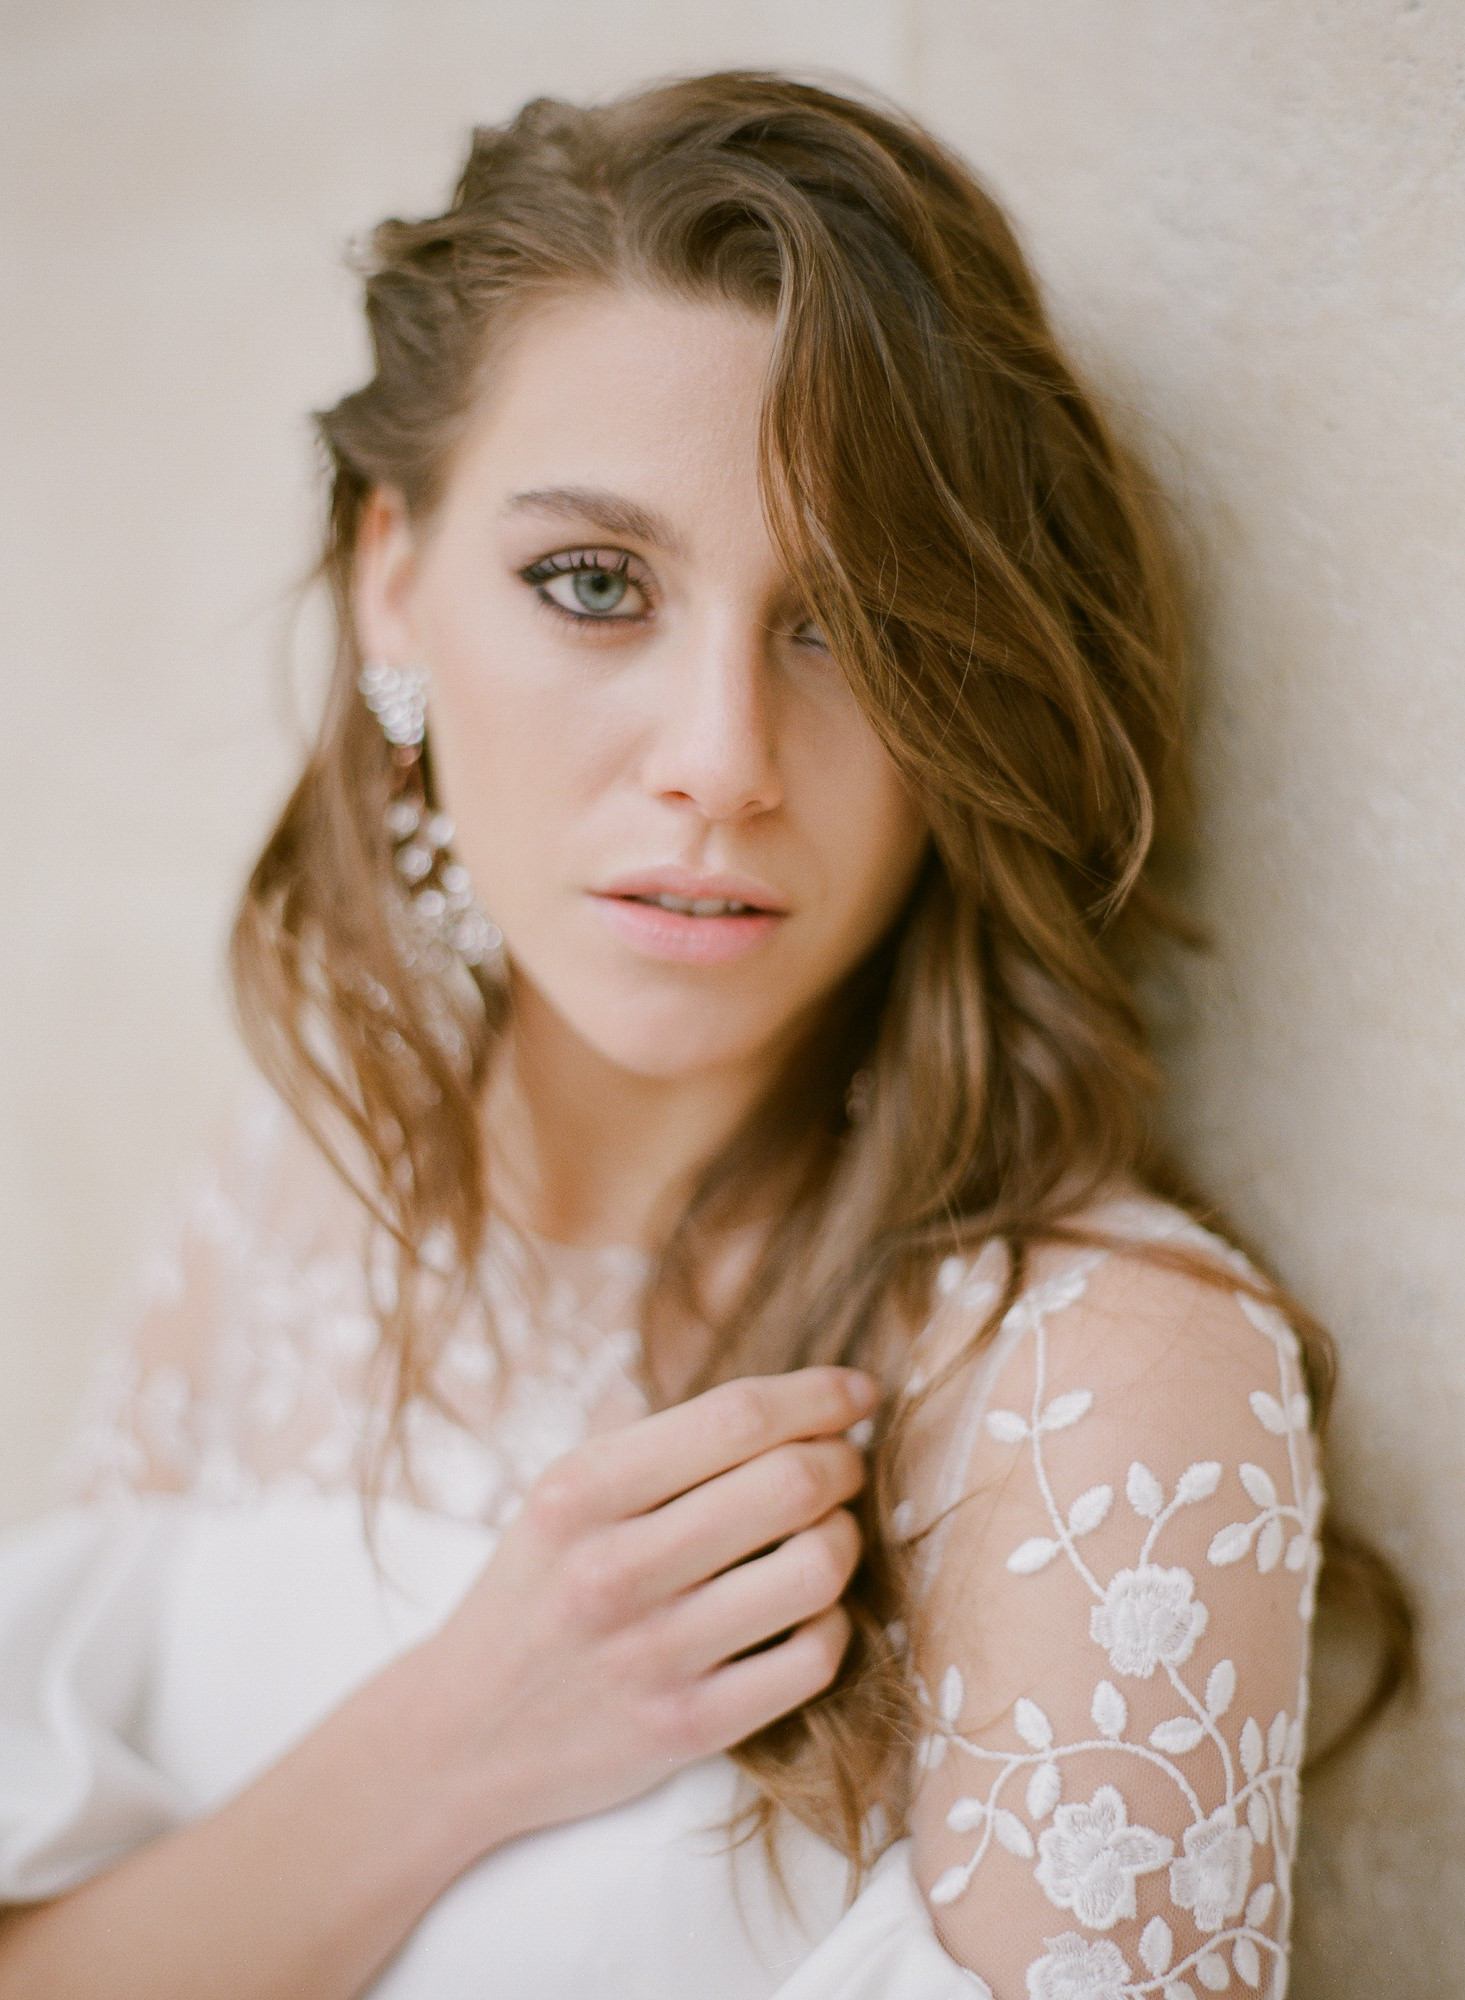 Portrait of bride with natual make-up by Gianluca Adovasio Photography